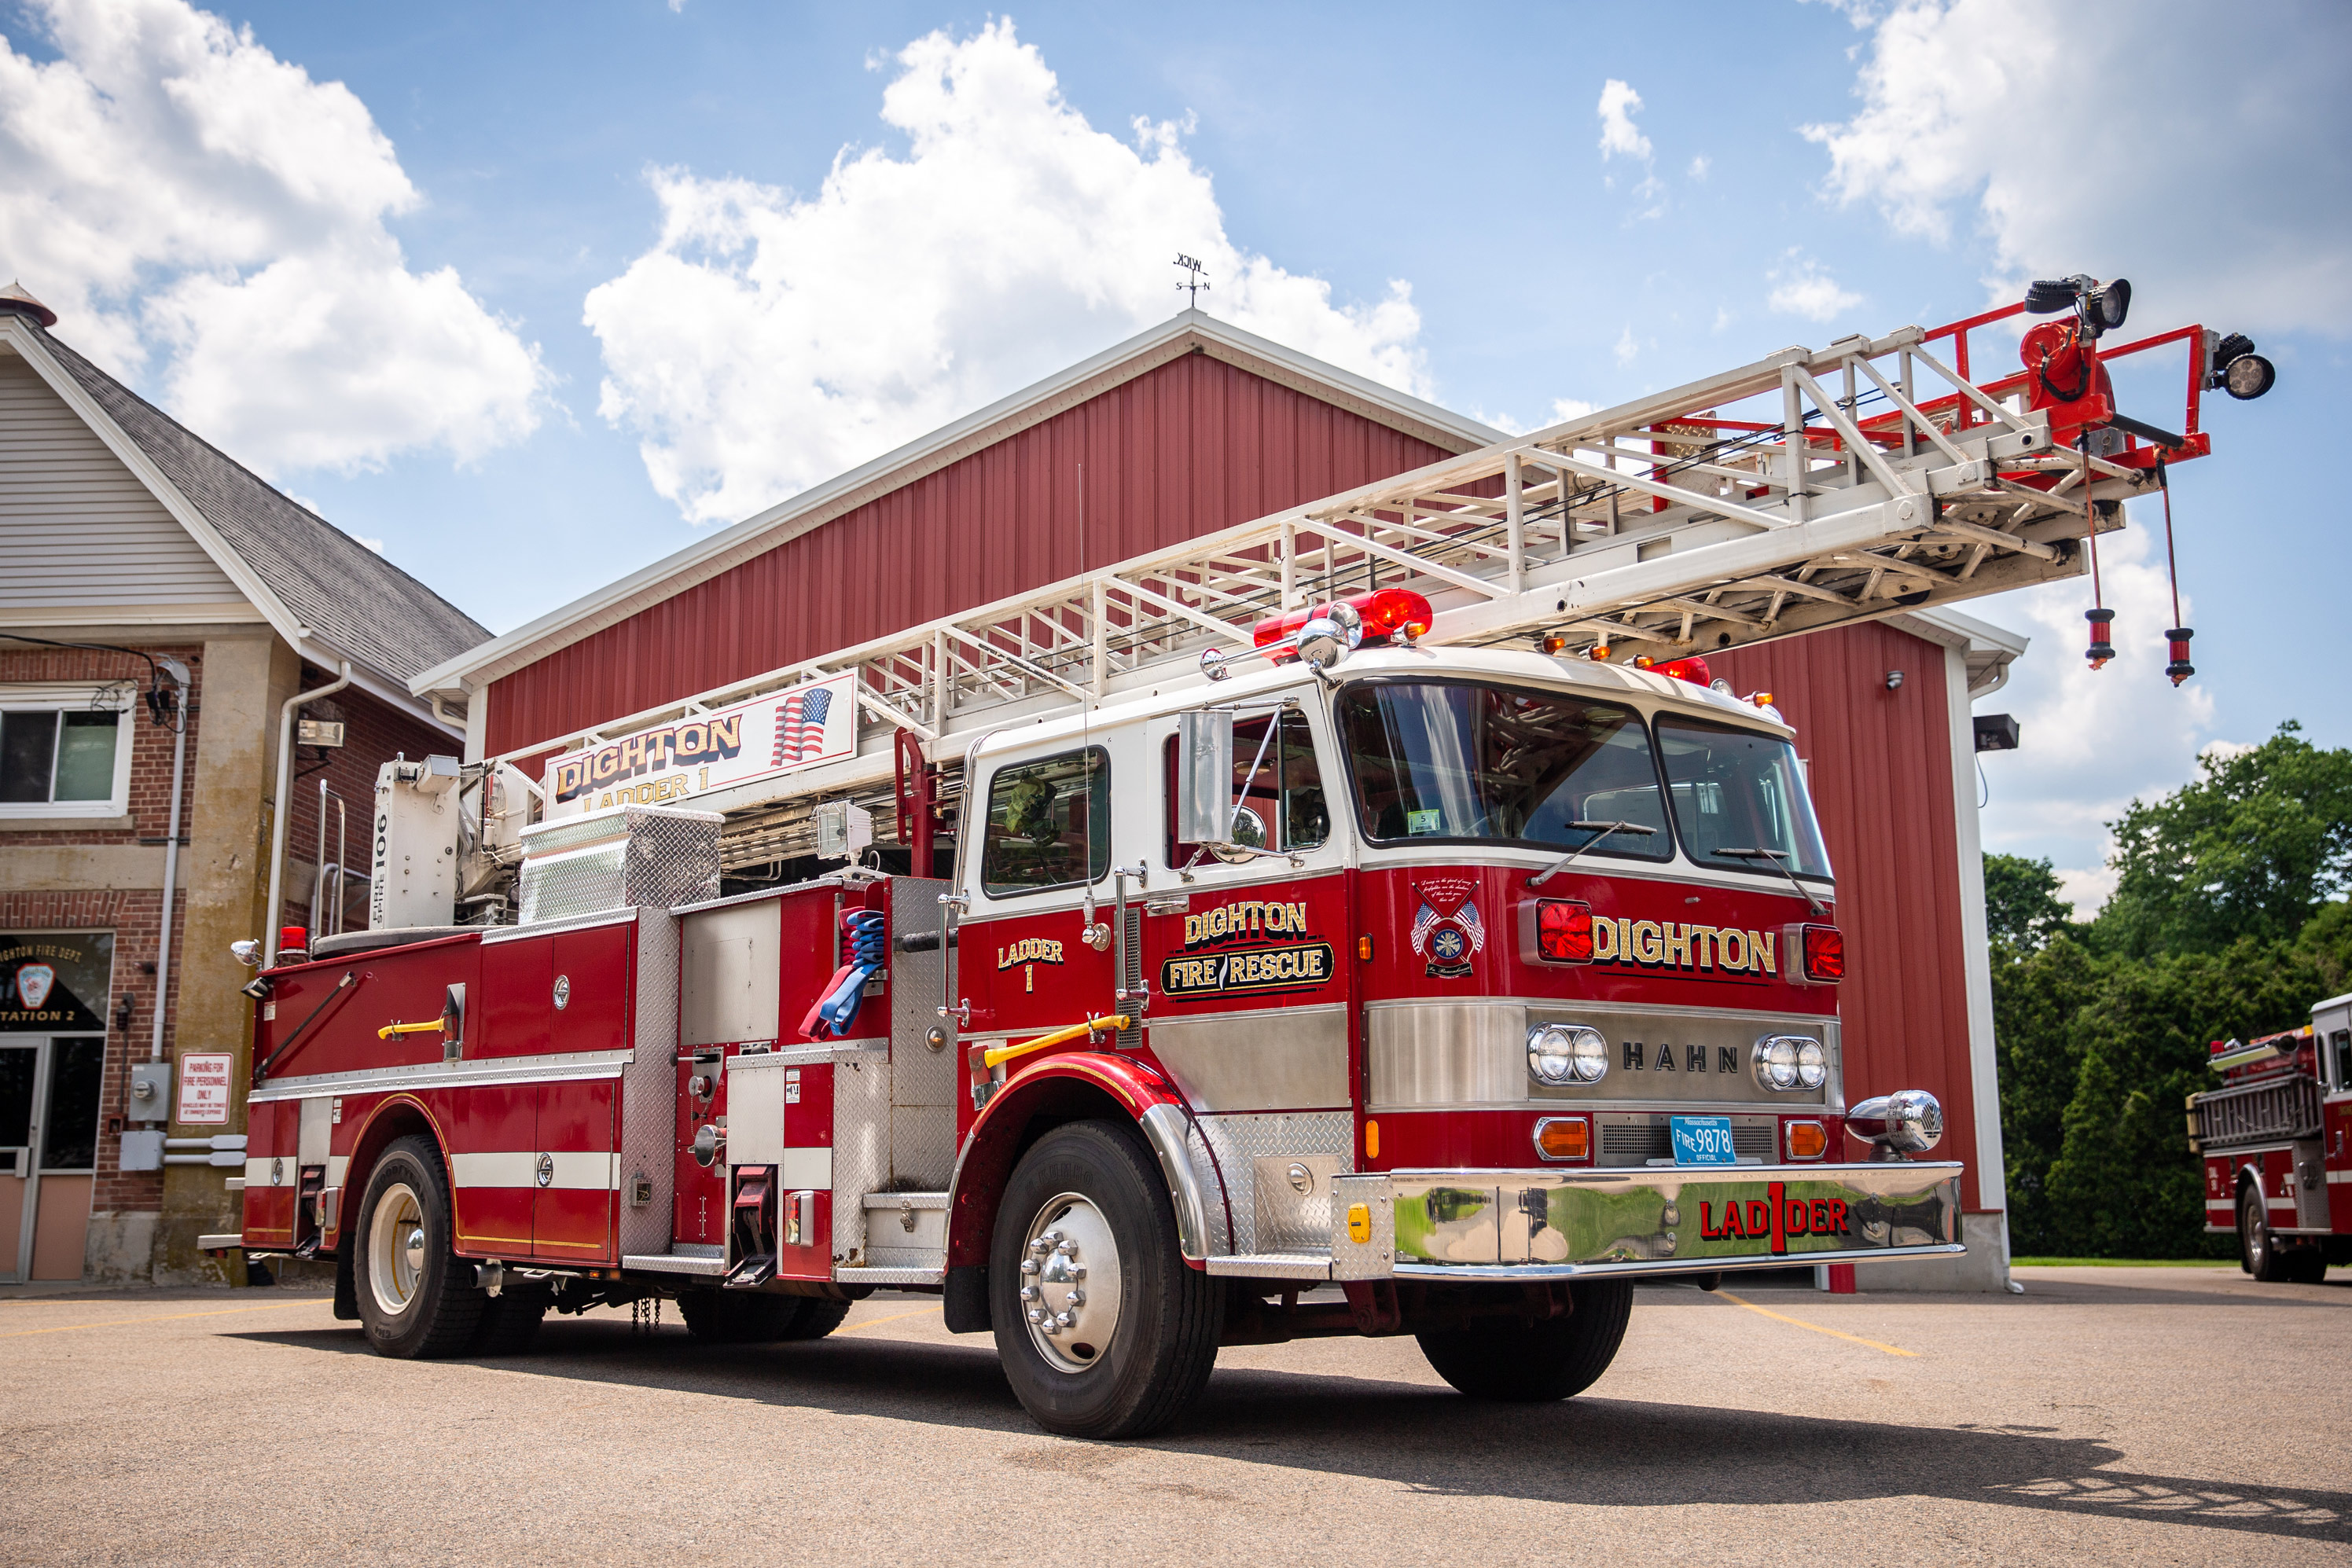 Dighton Fire Rescue News